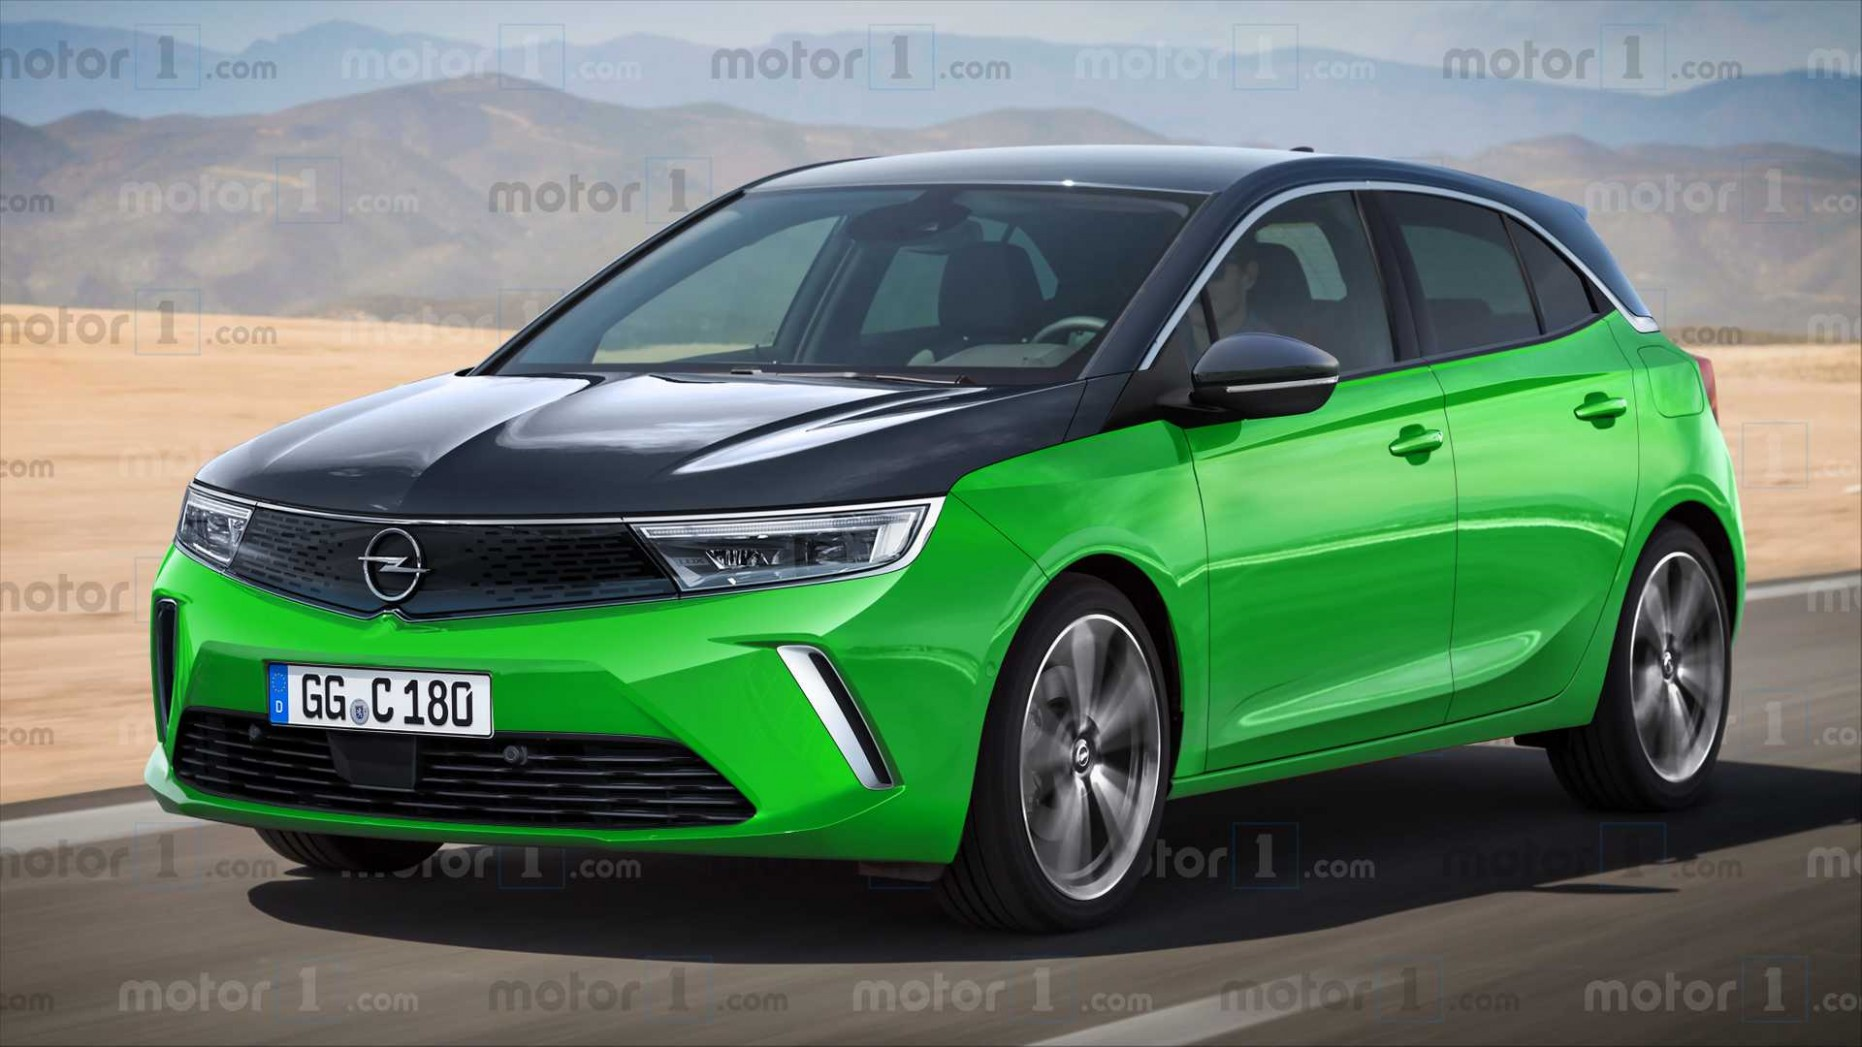 Opel Astra OPC Hot Hybrid Hatch Planned With Nearly 3 HP: Report